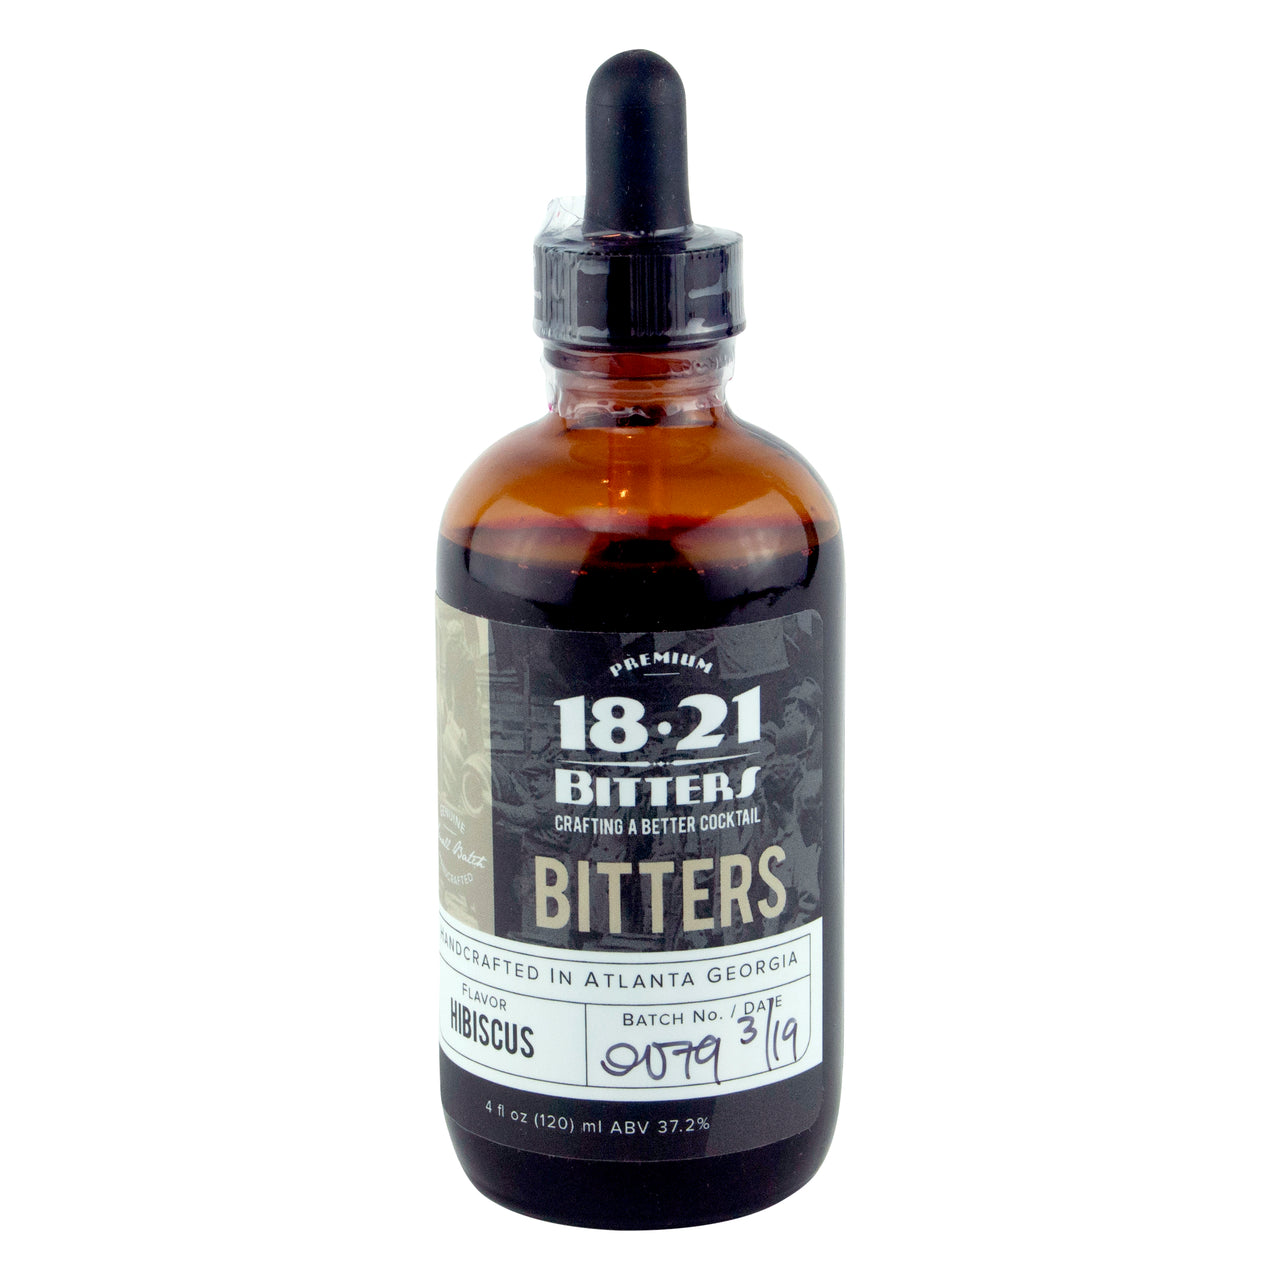 18.21 Bitters Hibiscus Bitters | Premium Craft Cocktail Bitters